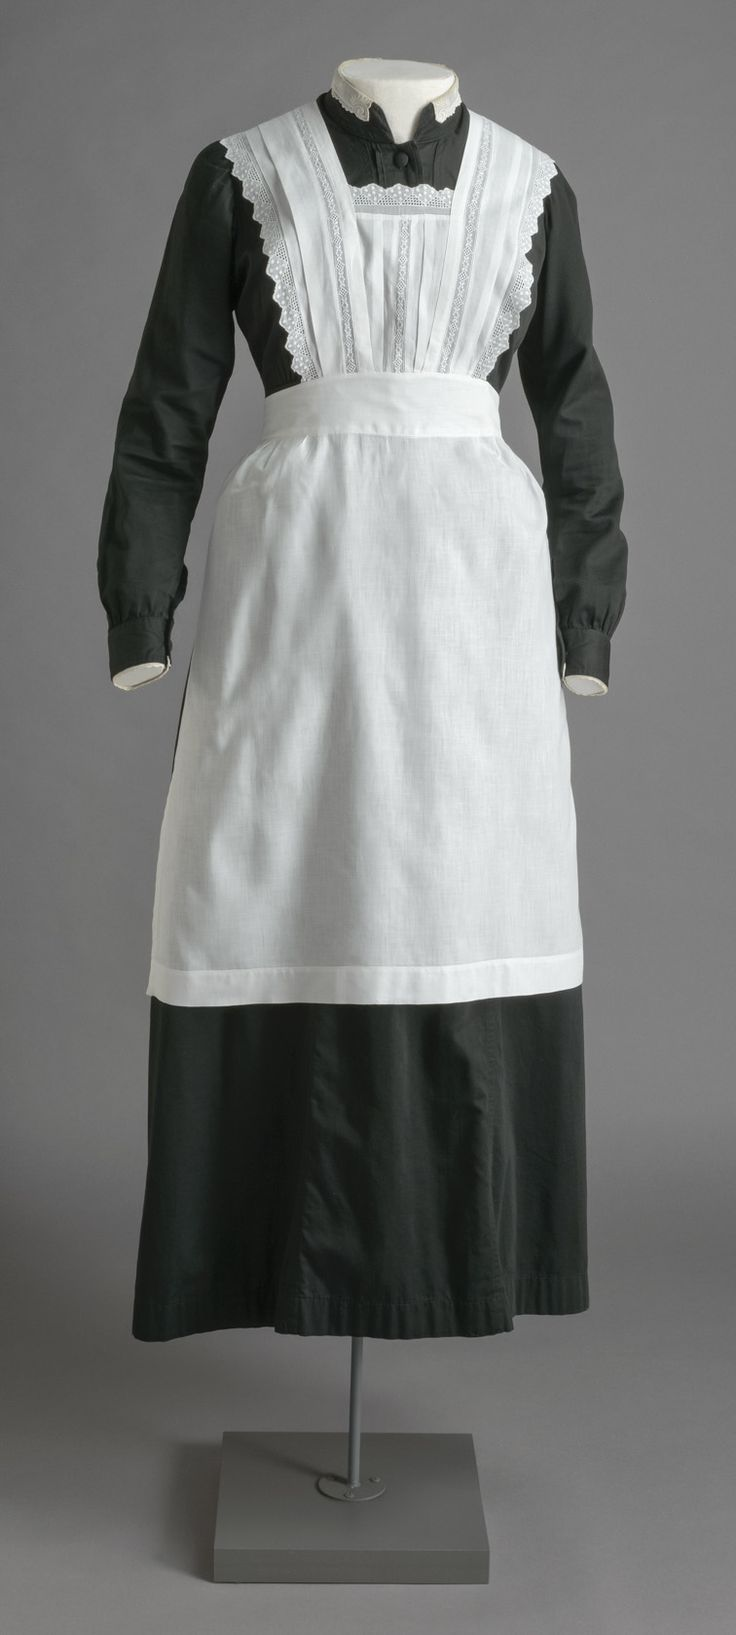 Maid's morning uniform worn by Anna on Downton Abbey. Cosprop Ltd., London. All Rights Reserved.